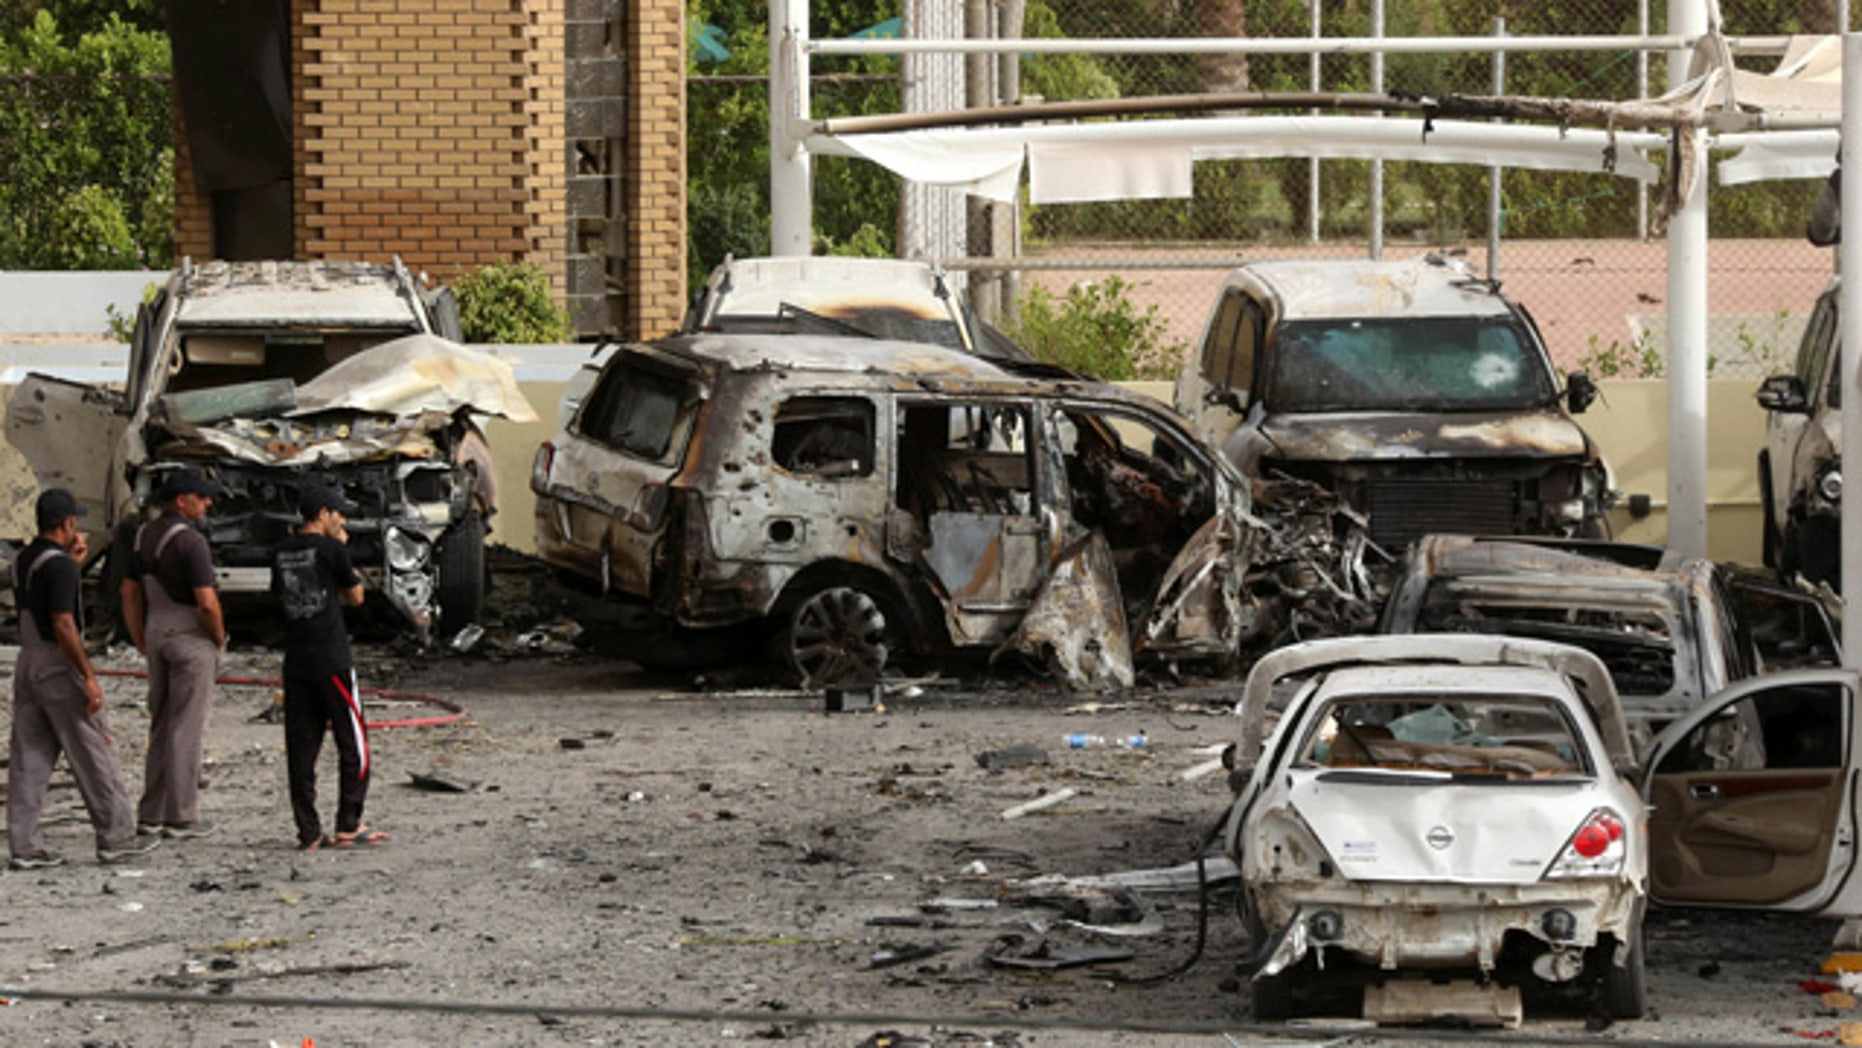 May 29, 2015: Civilians and security forces inspect the aftermath of a car bomb attack in the parking lot of Babil hotel in Karrada neighborhood, Baghdad, Iraq. (AP Photo/Hadi Mizban)